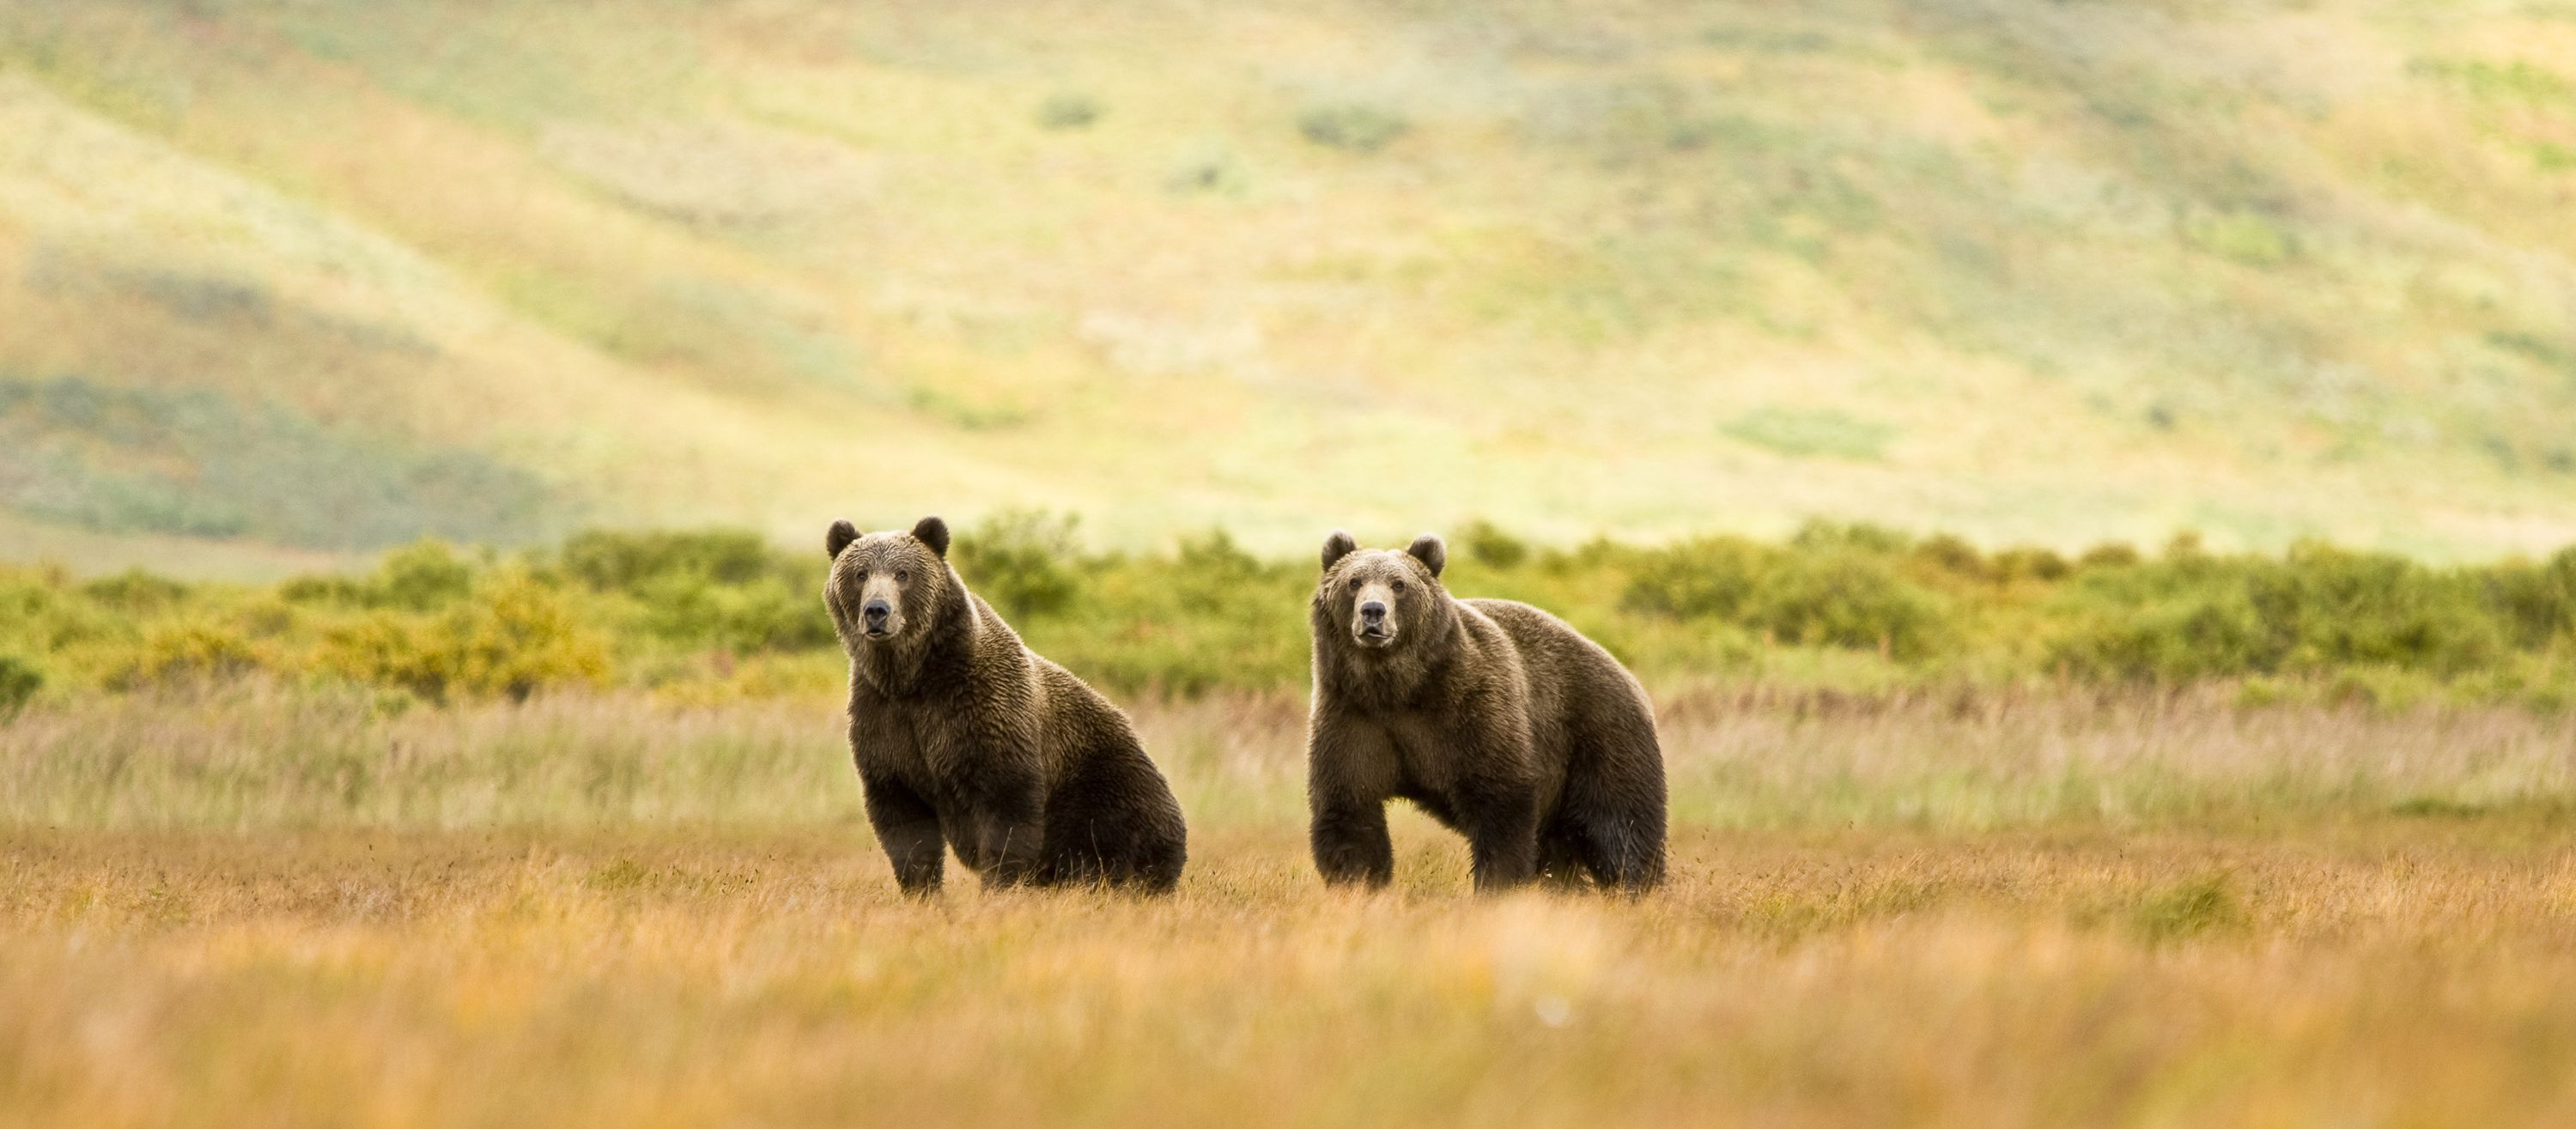 Zwei Grizzlybären in der Wildnis